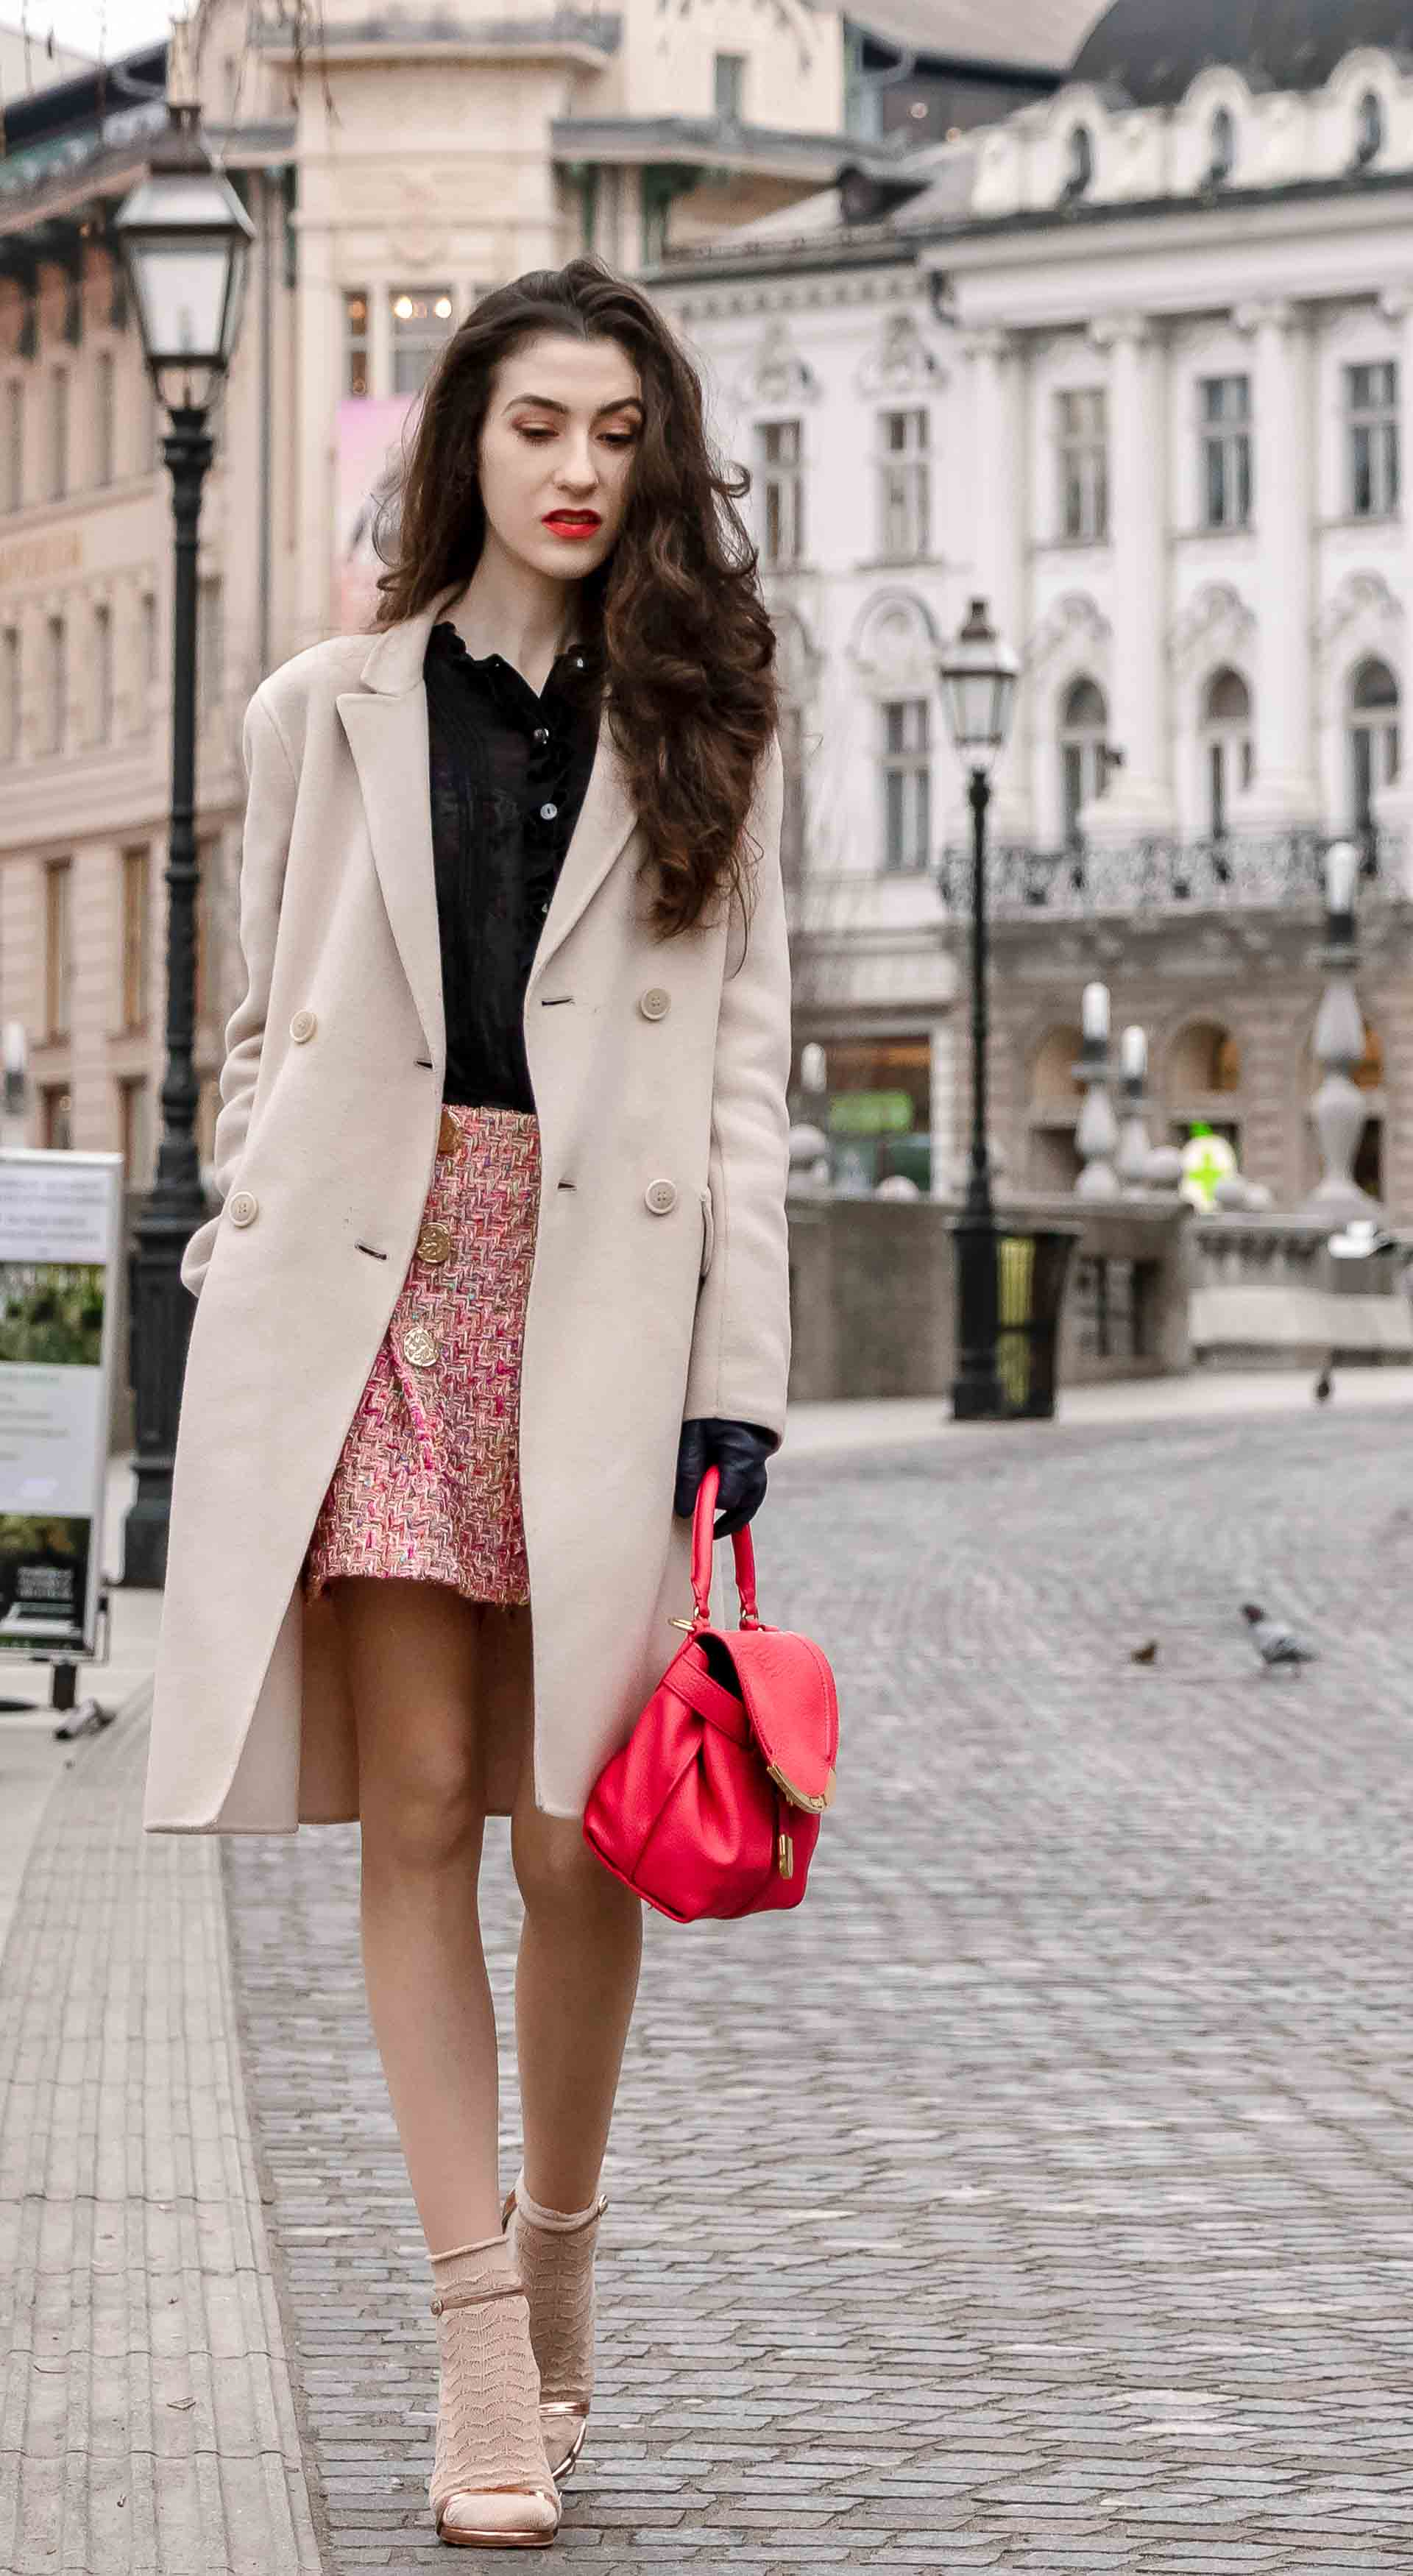 Fashion Blogger Veronika Lipar of Brunette from Wall Street wearing bronze socks and high shine rose gold Songnudist sandals from Stuart Weitzman, tweed Storets minis skirt, black blouse, off white Weekend Maxmara coat while walking down the street in Ljubljana